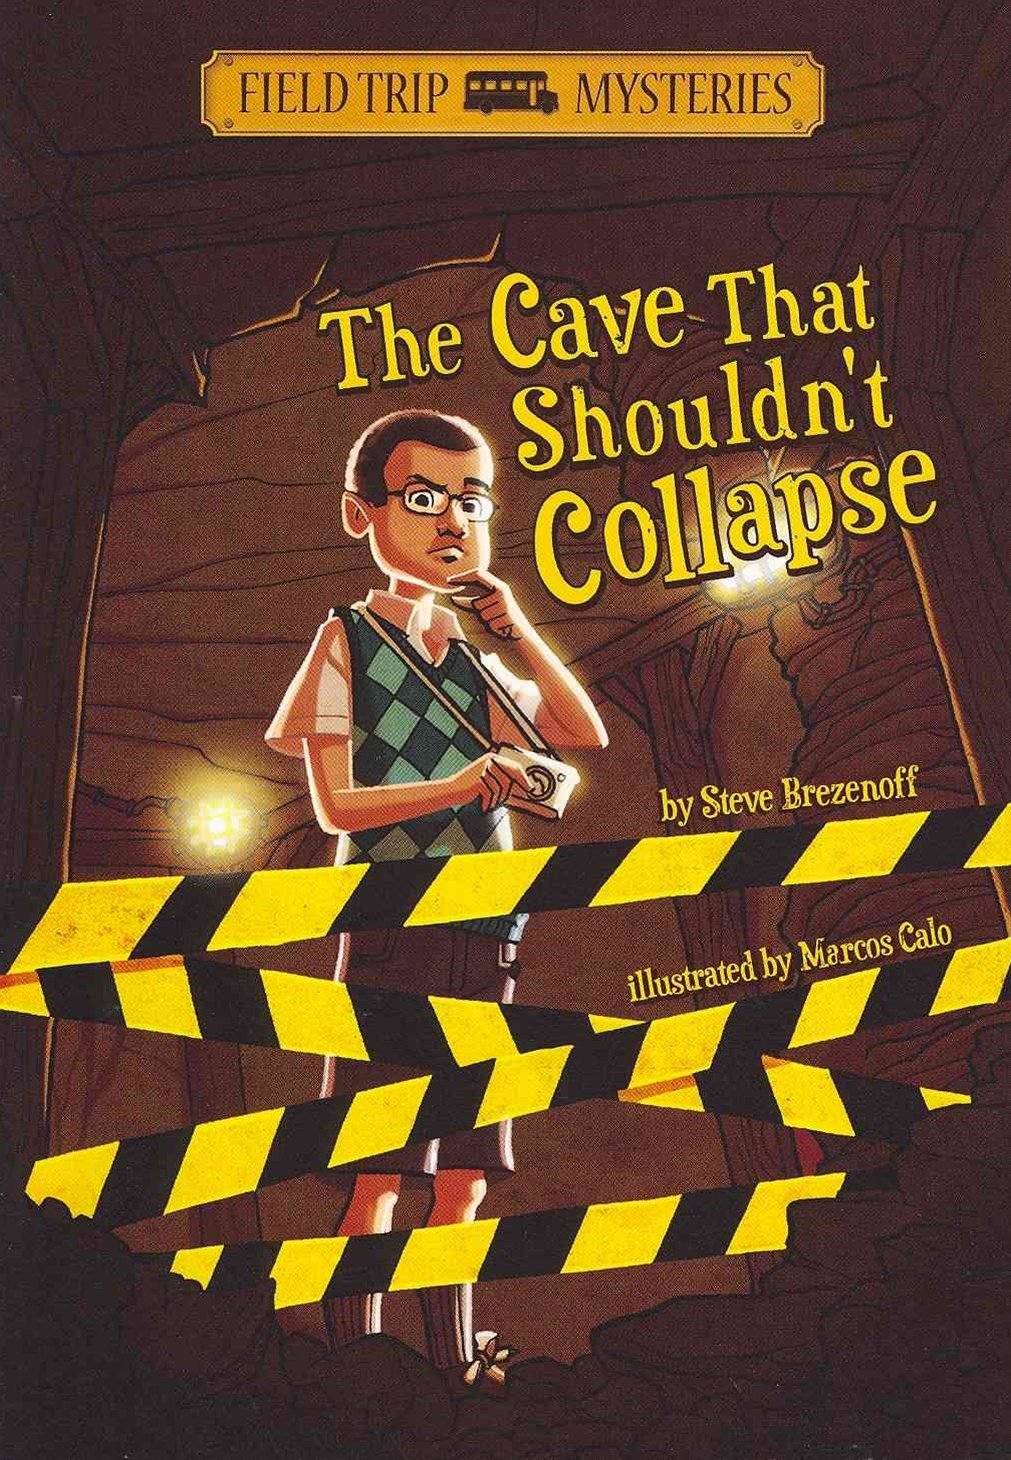 The Cave That Shouldn't Collapse